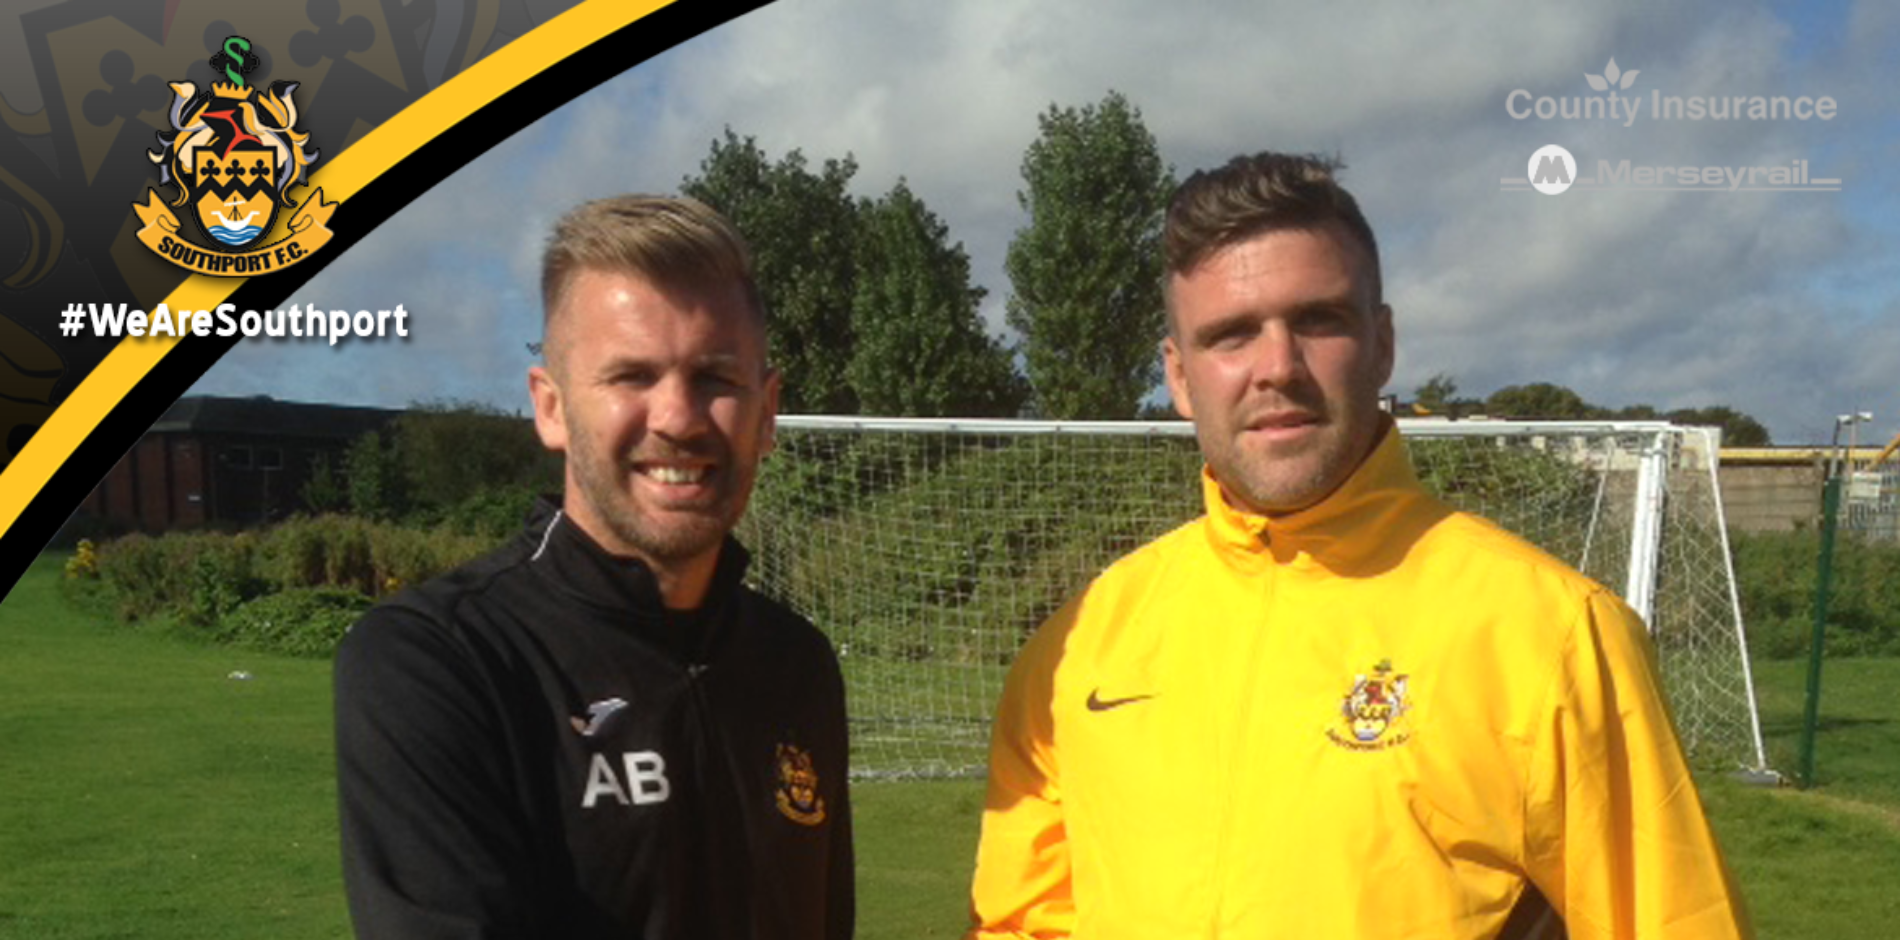 Southport FC are delighted to announce that Mark Creighton has been appointed as the club's new assistant manager.    Southport FC are delighted to announce that Mark Creighton has been appointed as the club's new assistant manager.    Mark brings a wealth of experience to the club following time...